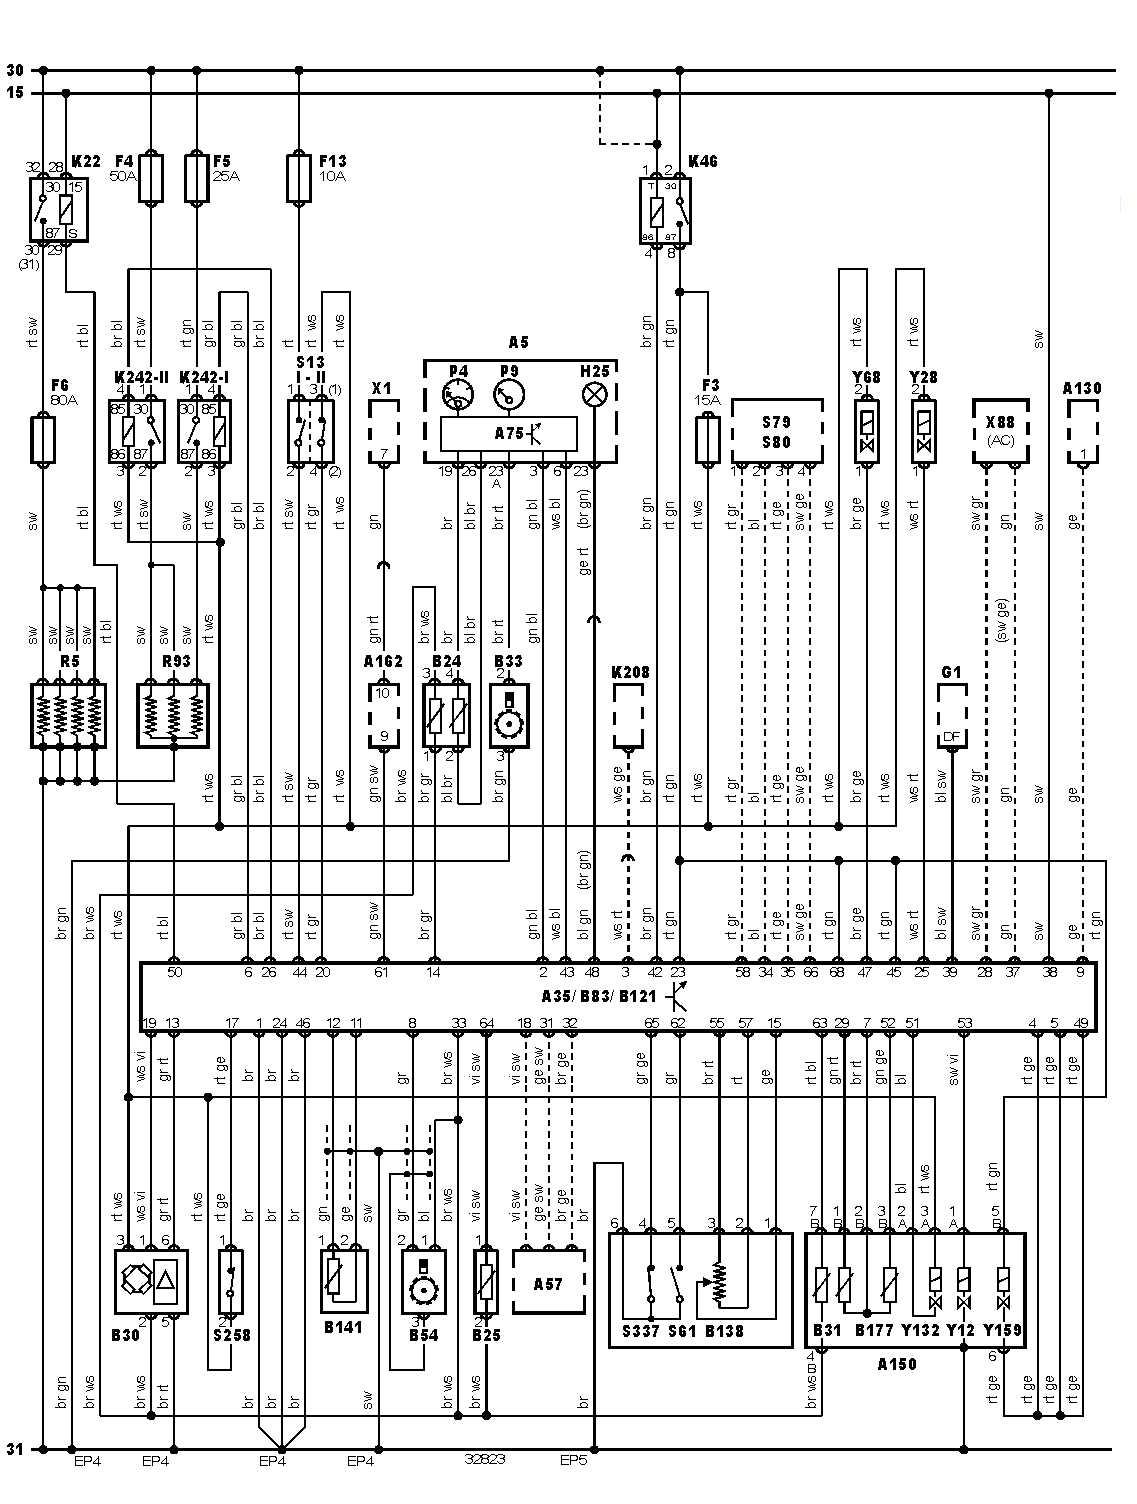 Pontiac Grand Am 2001 2004 Fuse Box Diagram in addition Volkswagen Jetta Door Wiring Harness likewise P 0900c1528008377a further 97 Chevy Lumina Anti Theft Module Location additionally 7pm4q Pontiac Bonneville Gxp Replace Motor Mount. on pontiac bonneville manual